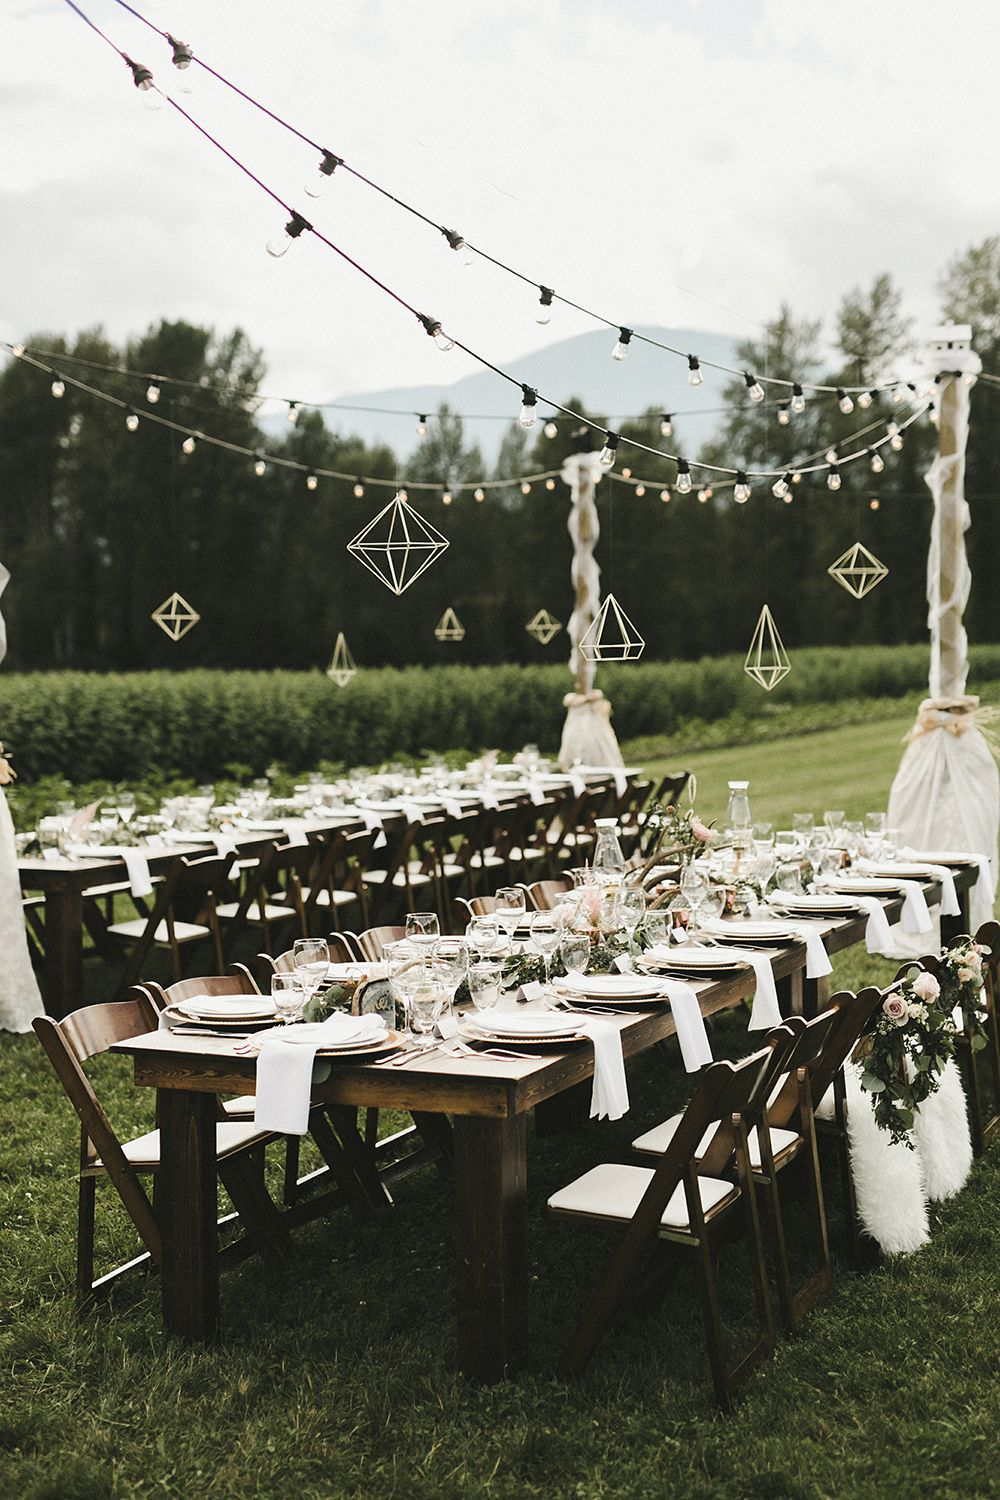 Eclectic Boho Wedding with Charming Rustic Touches